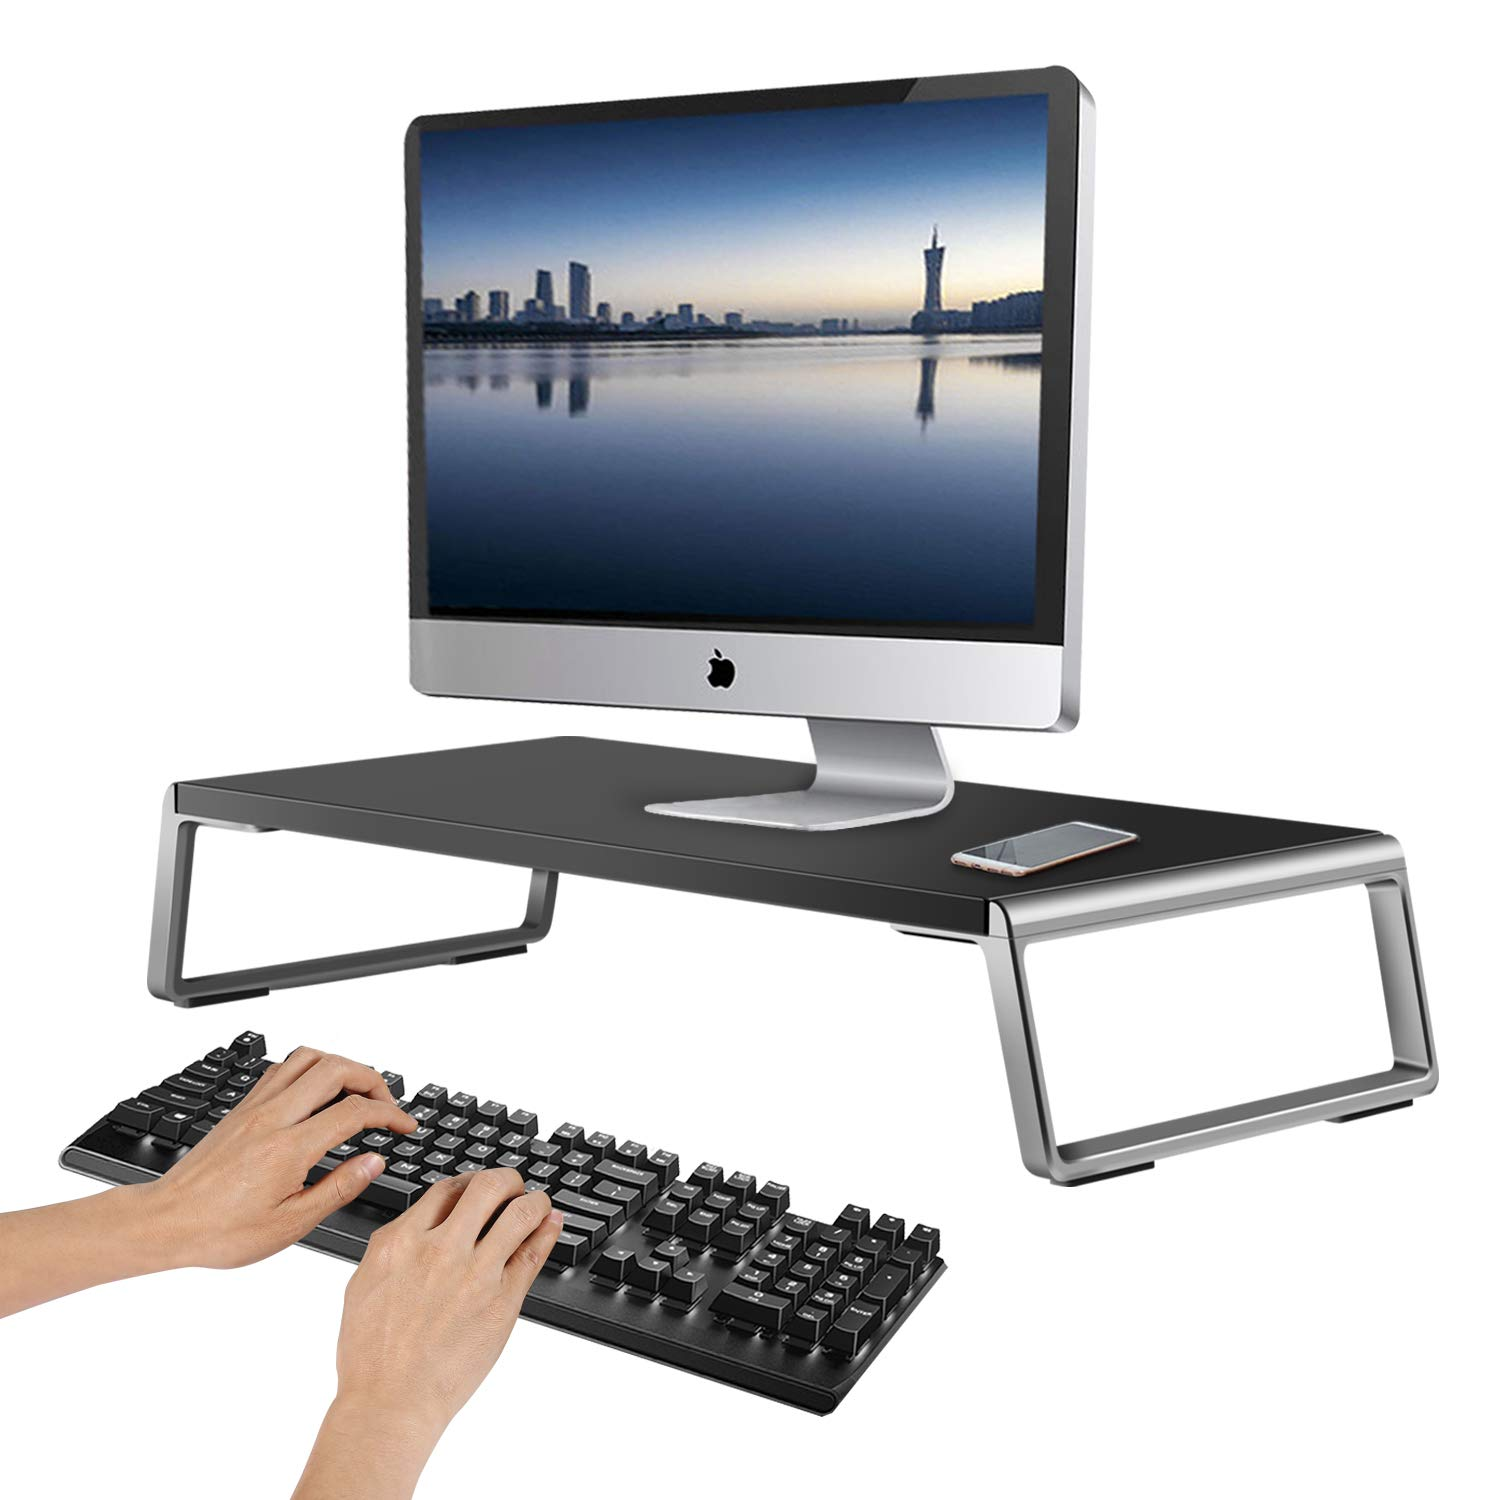 AboveTEK Monitor Stand with Aluminum Feet, Wood Computer Riser for Laptop iMac TV LCD Display Printer, Desk Storage for Keyboard, 20x9.5 inch Desktop Organizer for Home Office Dorm Workspace, Black